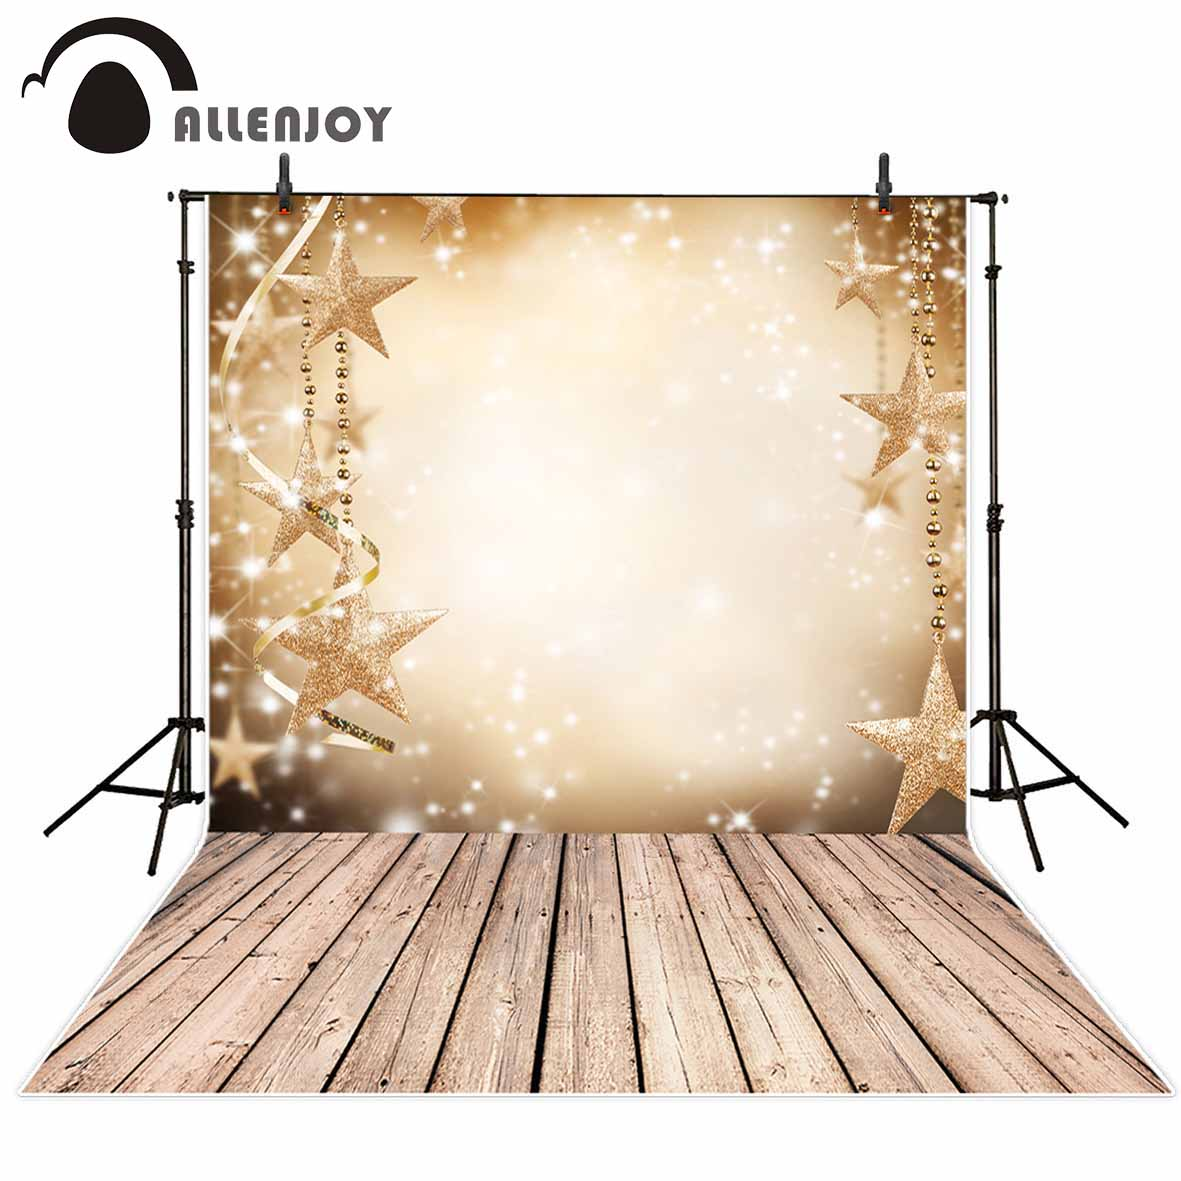 Allenjoy shiny gold stars wood wall floor photography background decoration ribbon board baby shower backdrops photo studio allenjoy photography backdrops love white wood board floor red hearts branches valentine s day wedding photo booth profissional